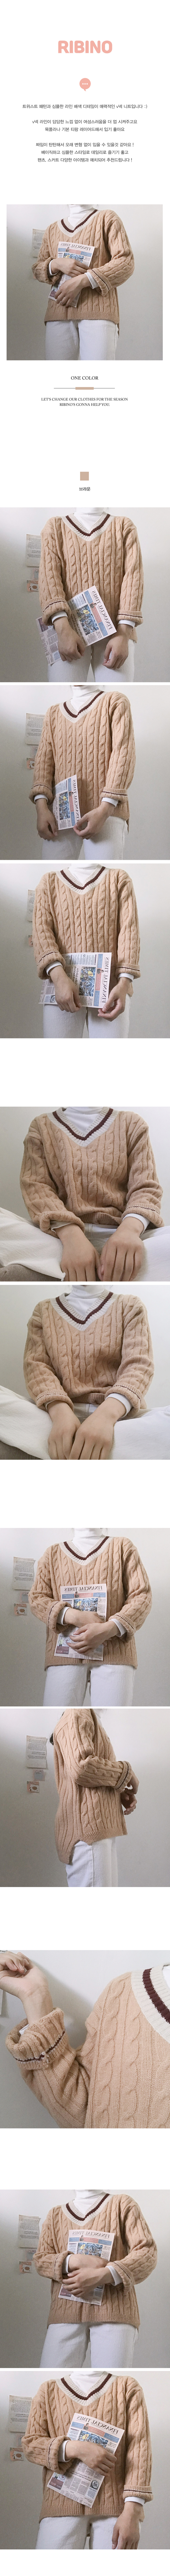 Color Twisted Knitwear